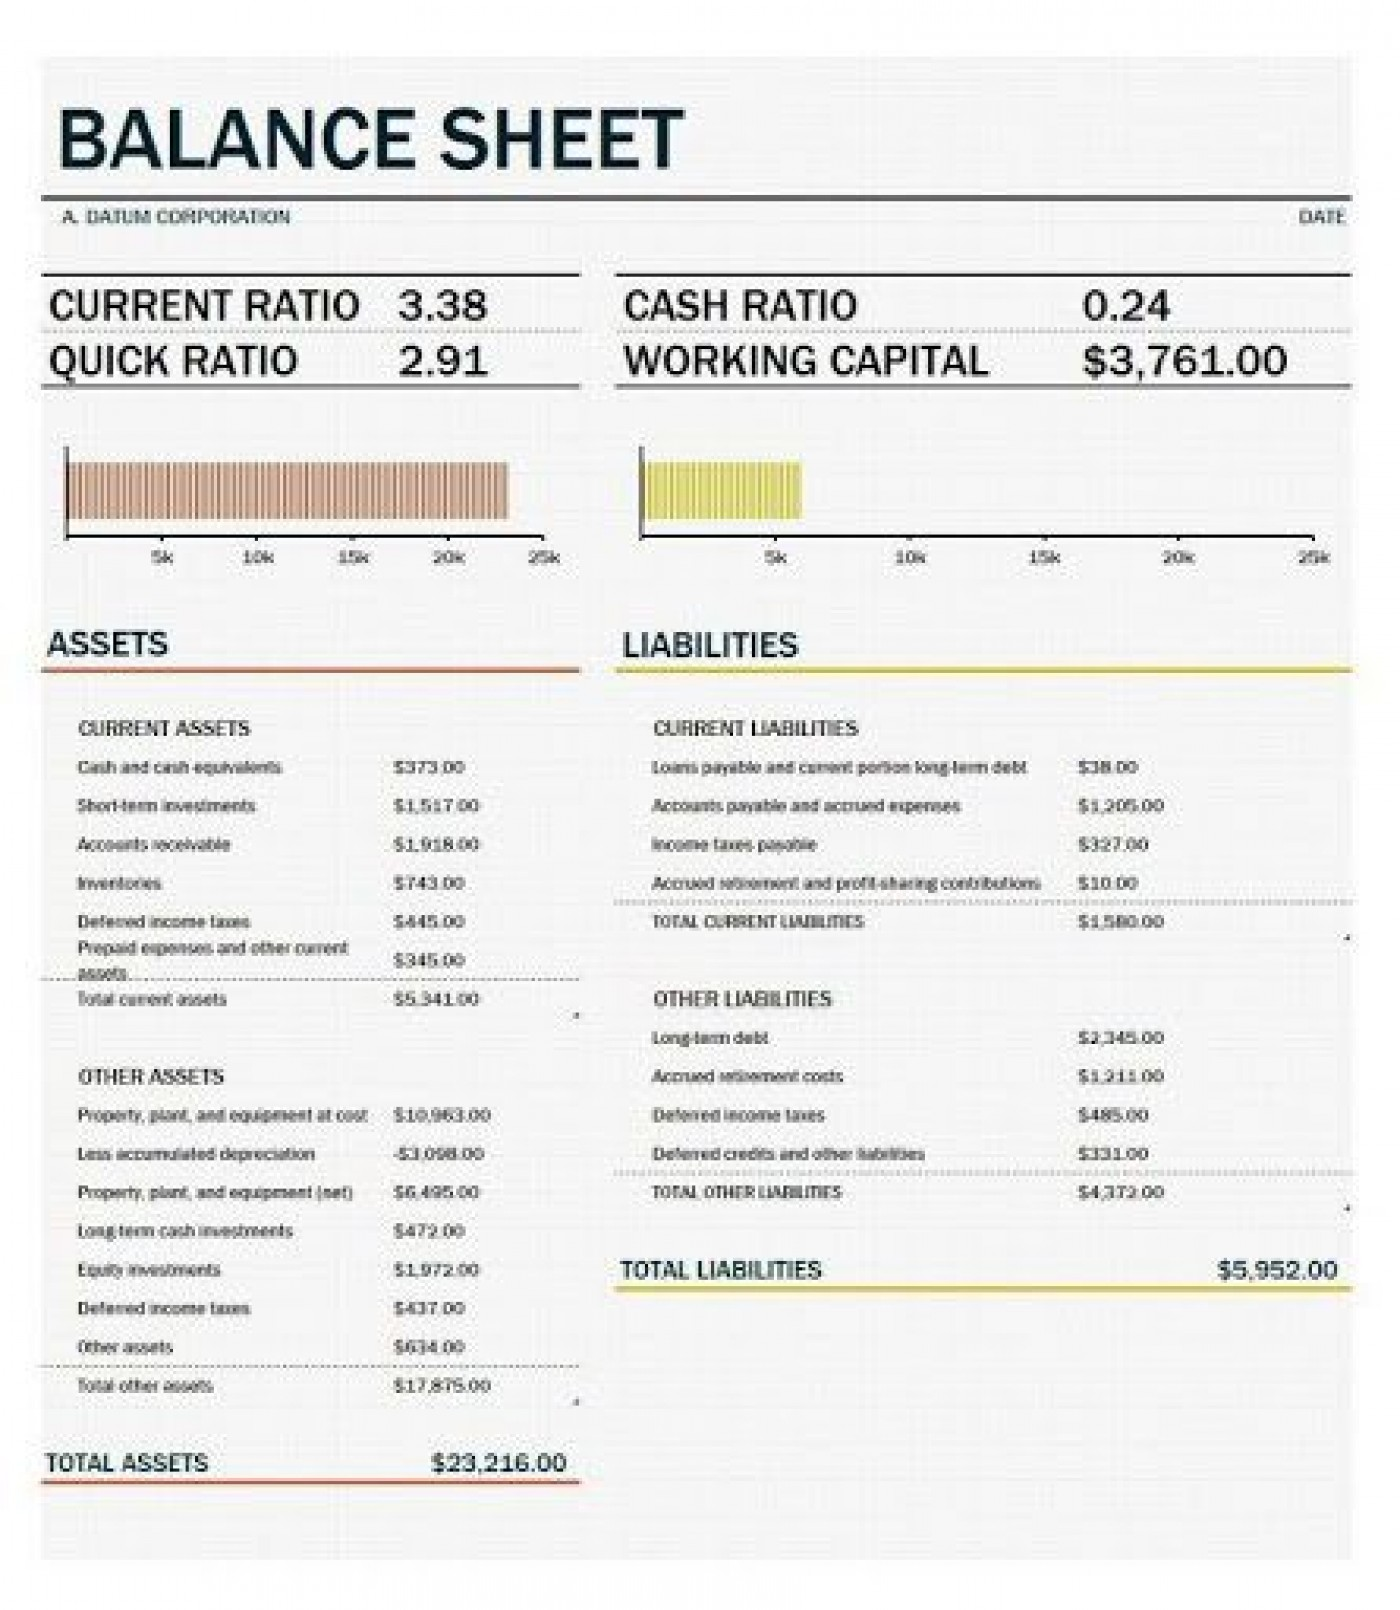 002 Unforgettable Simple Balance Sheet Template Photo  Example For Small Busines Sample A Church1400